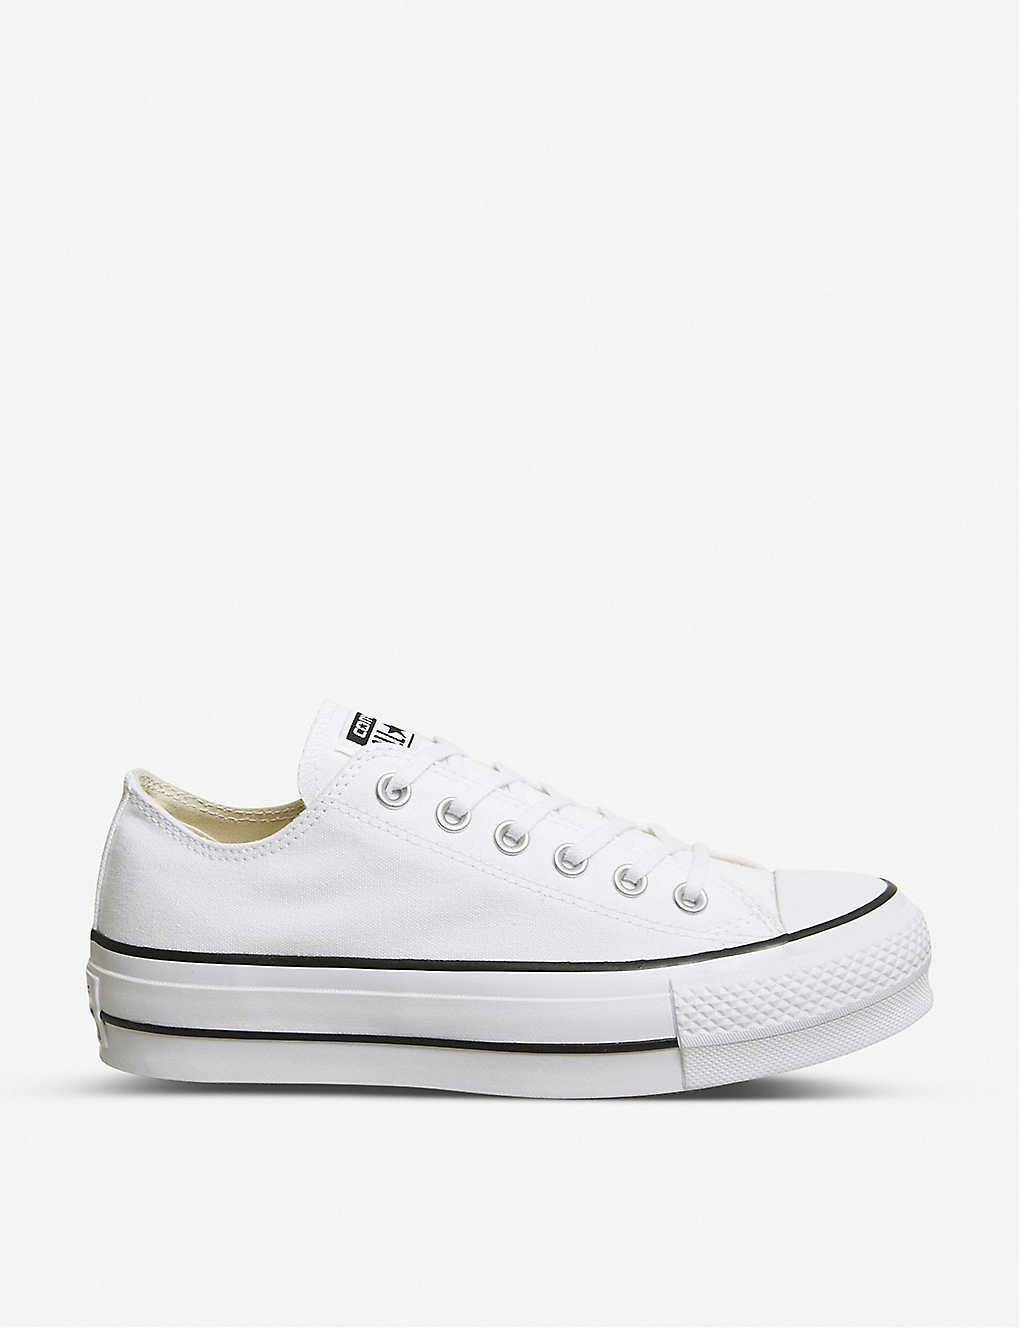 eabe352f6ec9 CONVERSE - All Star Low Platform canvas trainers